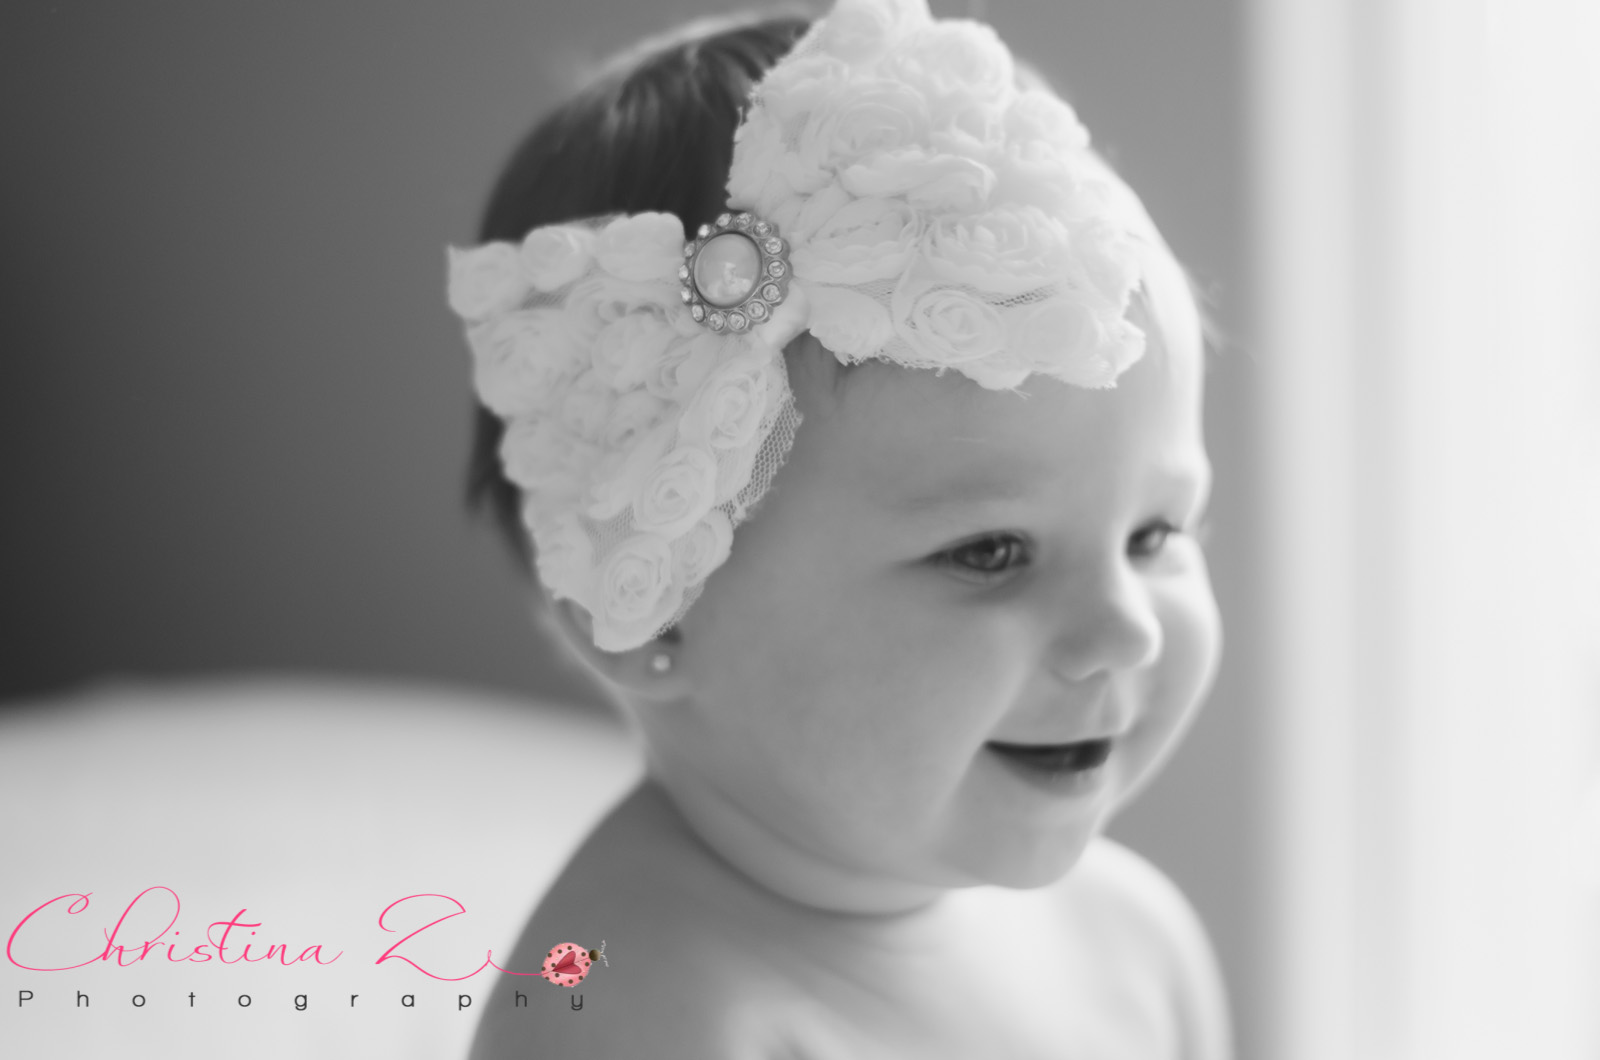 First Year Moments by Christina Z Photography - Bradenton, FL